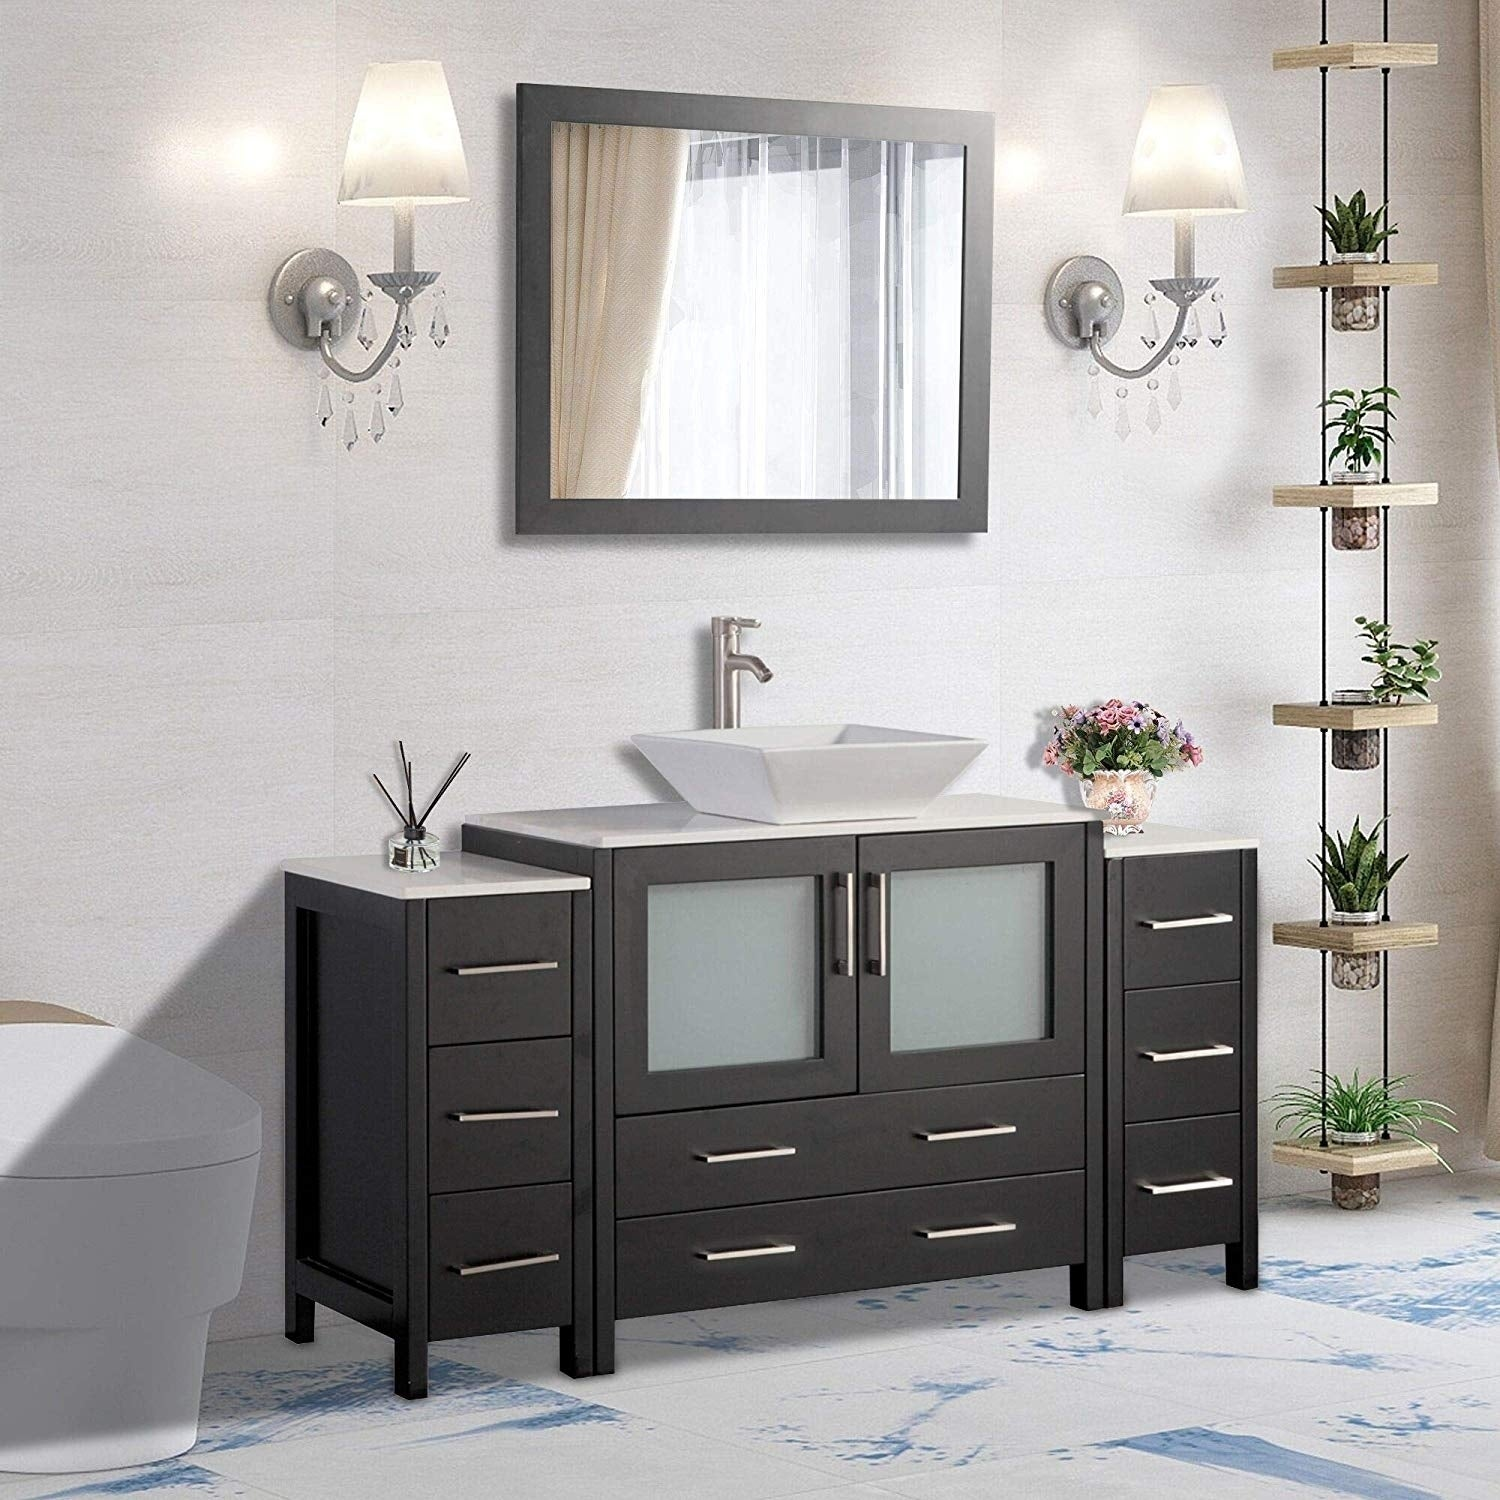 Shop Black Friday Deals On Vanity Art 60 Inch Single Sink Bathroom Vanity Set 8 Drawers 3 Cabinets 1 Shelf Quartz Top With Free Mirror Overstock 13681617